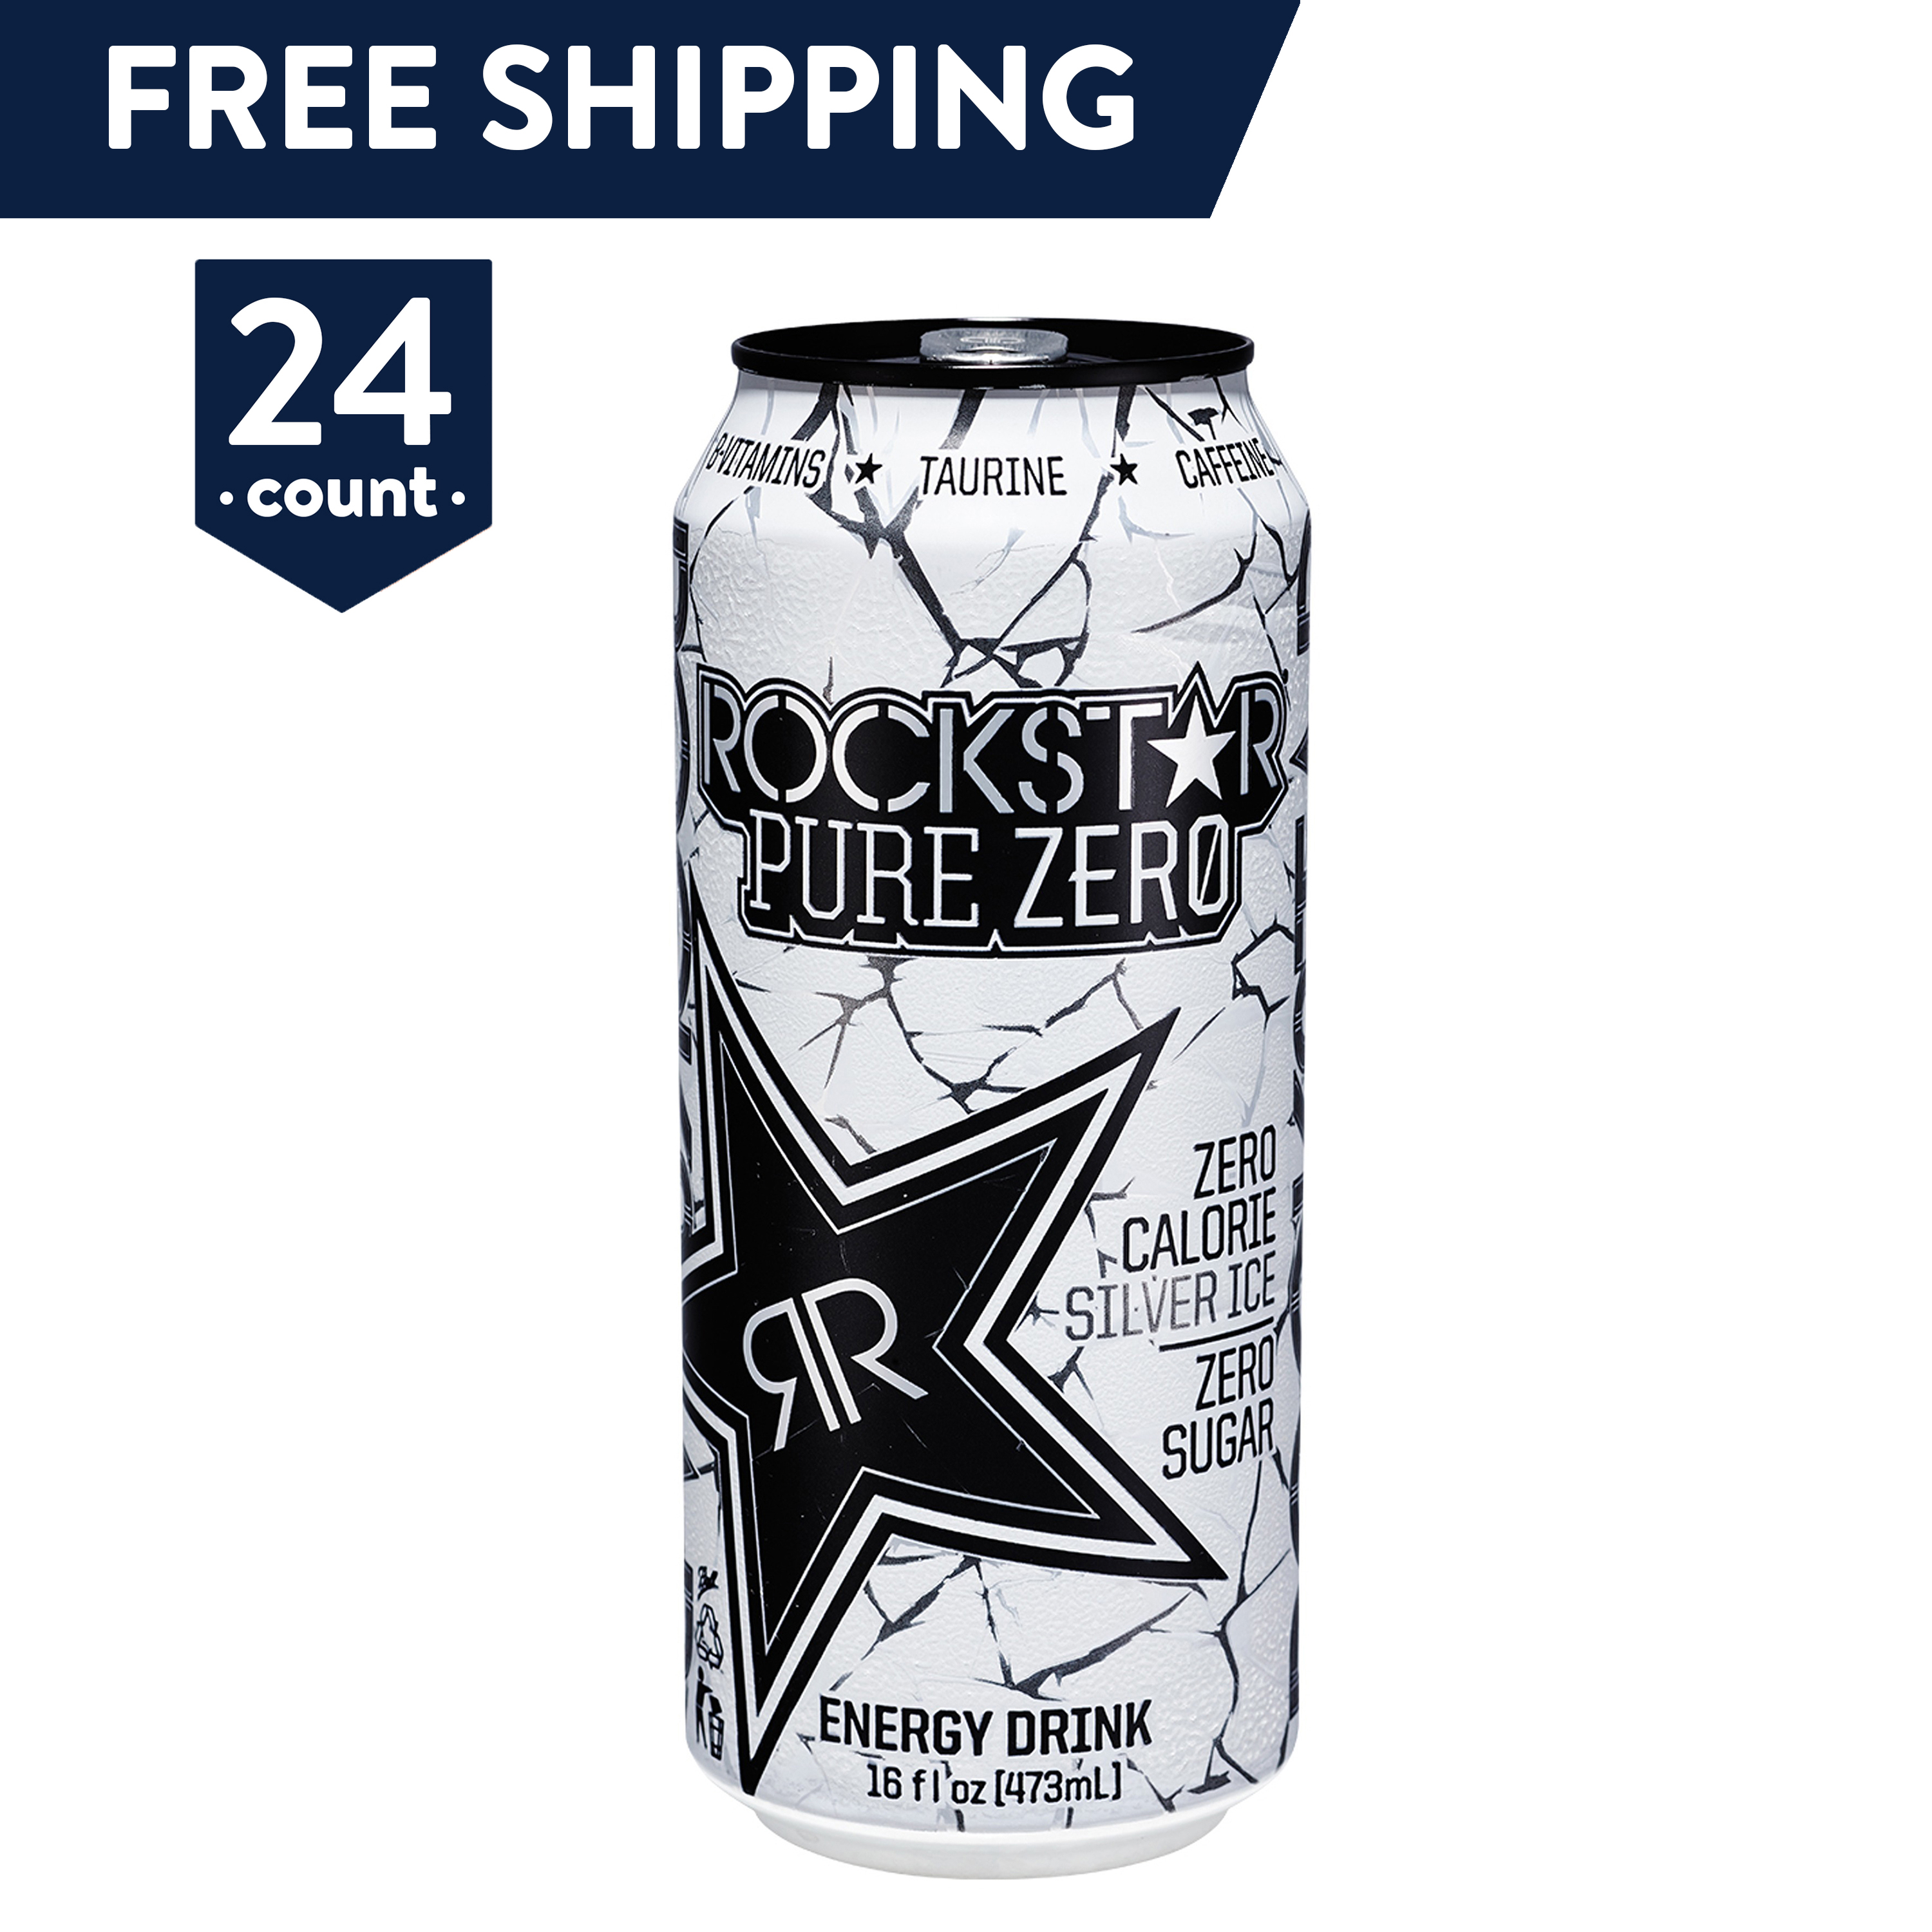 Rockstar Pure Zero Energy Drink, Silver Ice, 16 oz Cans, 24 Count